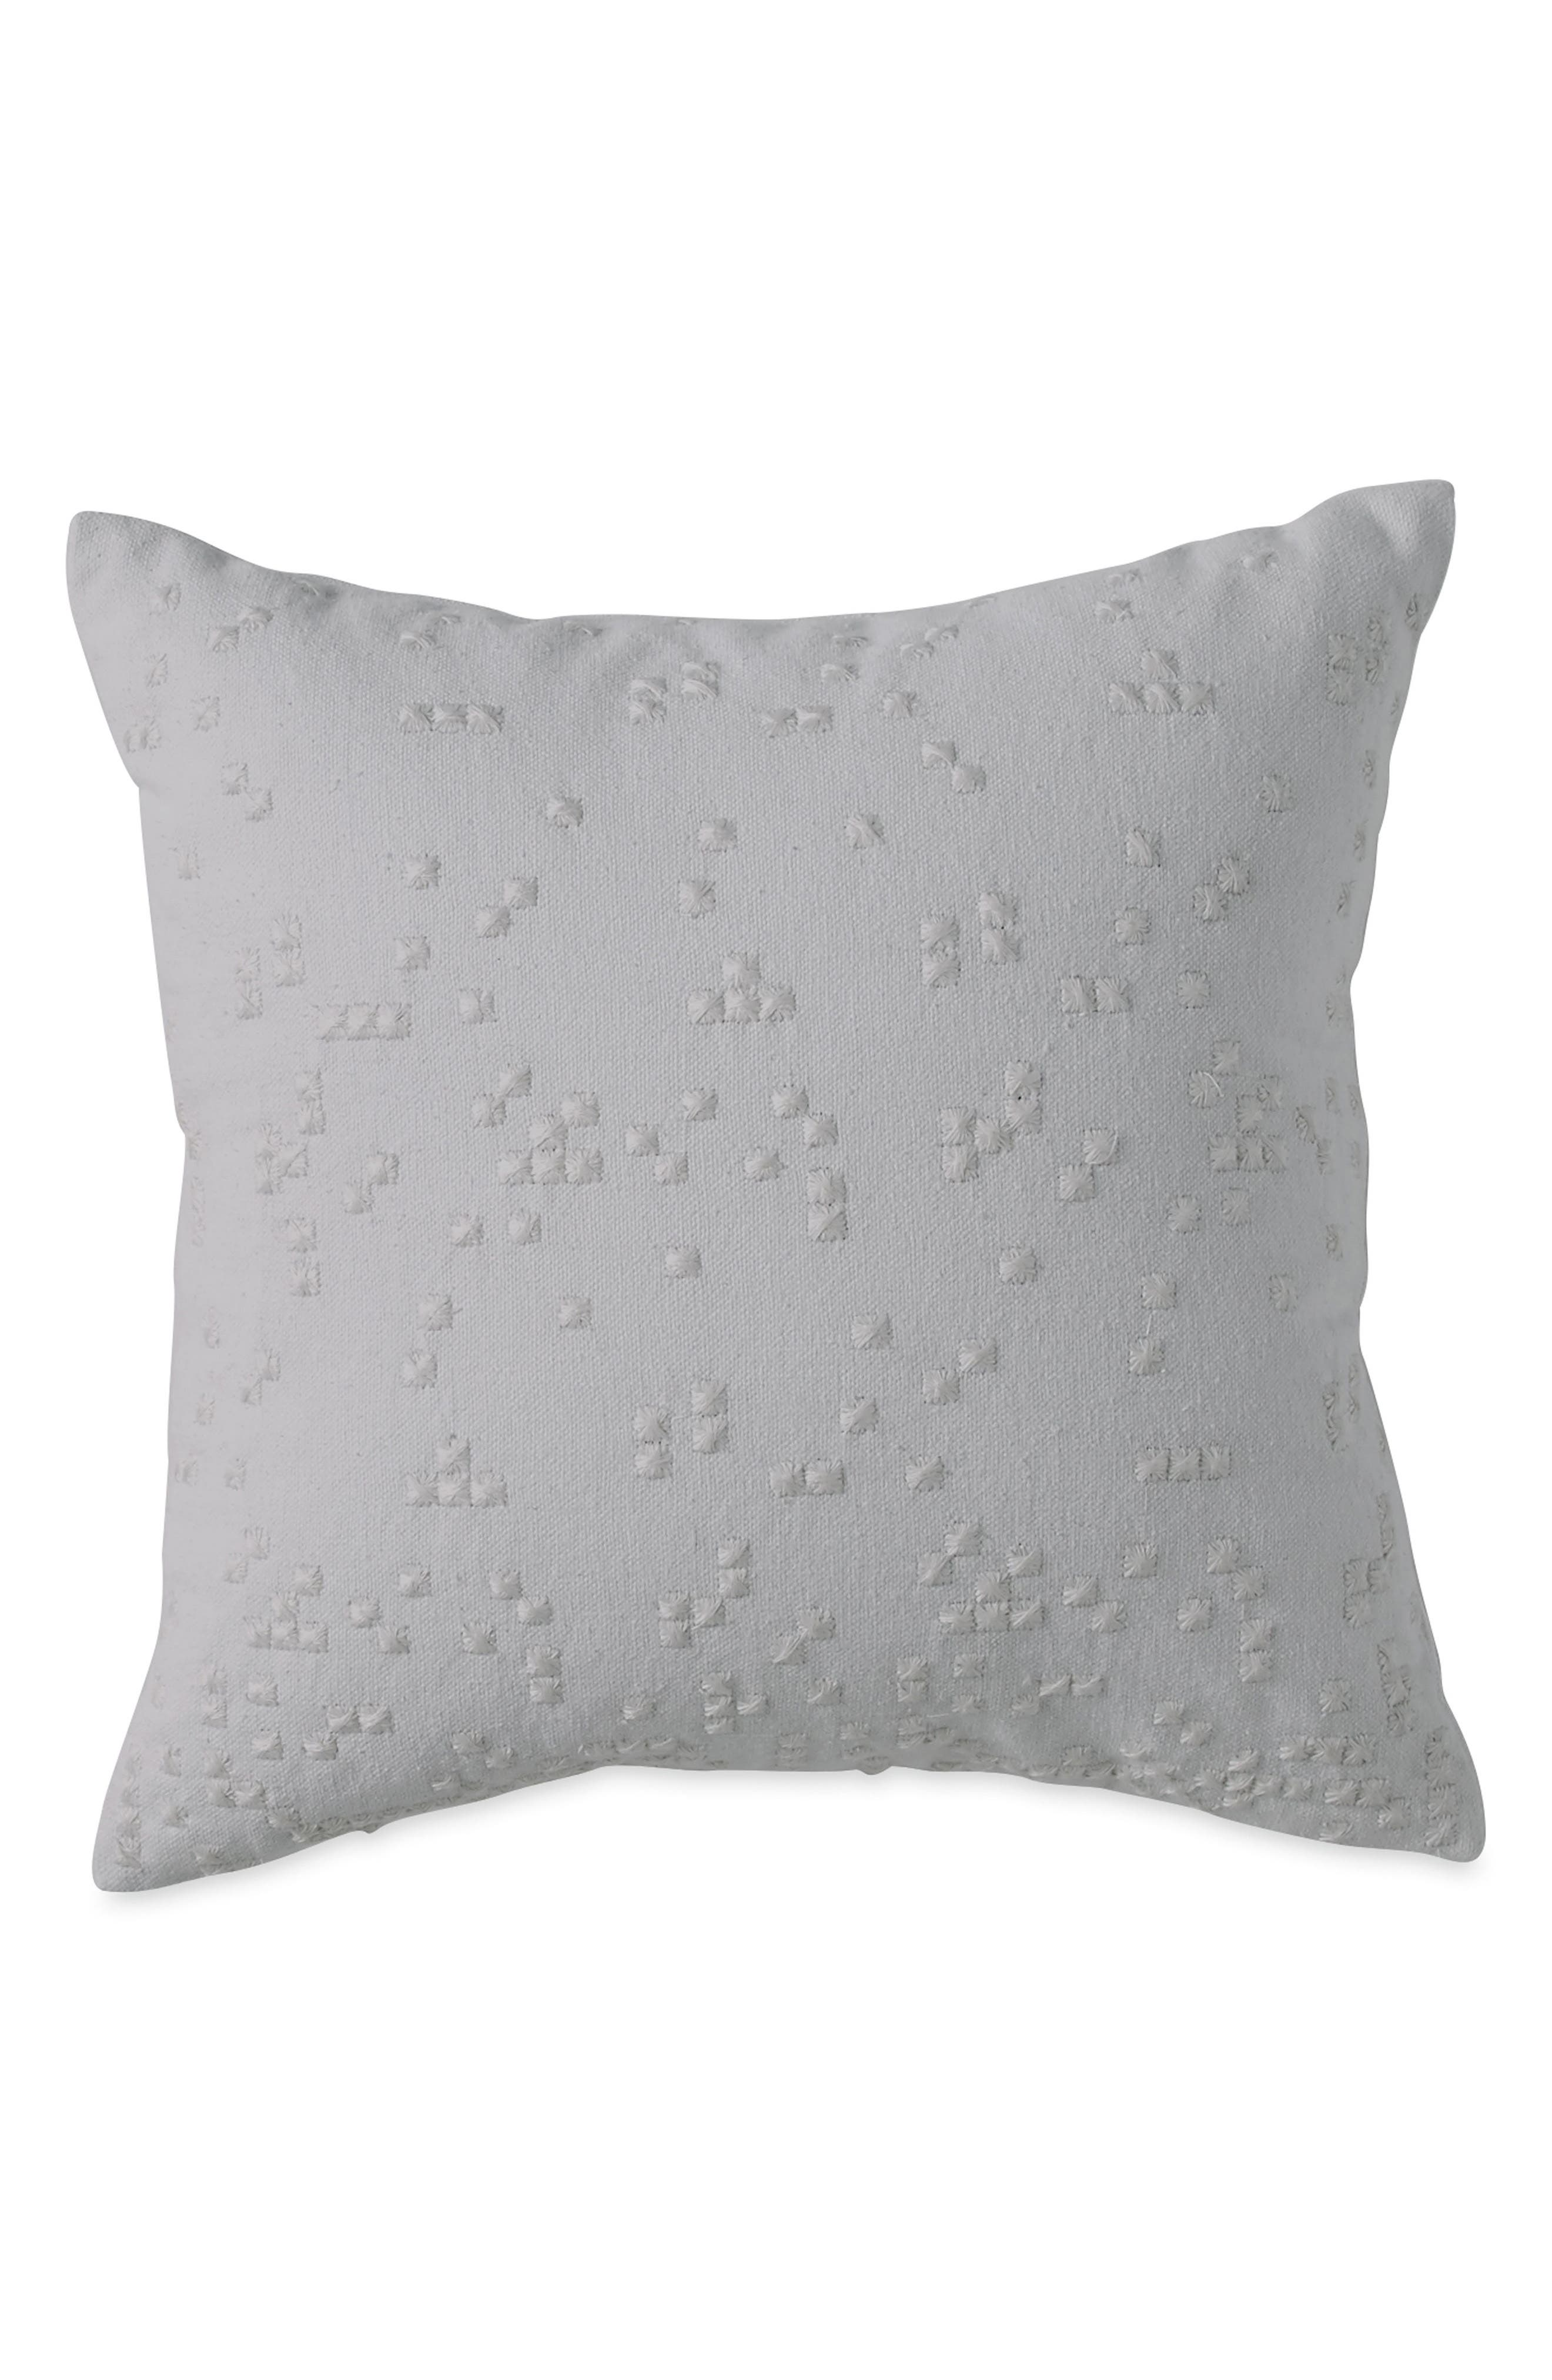 DKNY, Embroidered Accent Pillow, Main thumbnail 1, color, 020